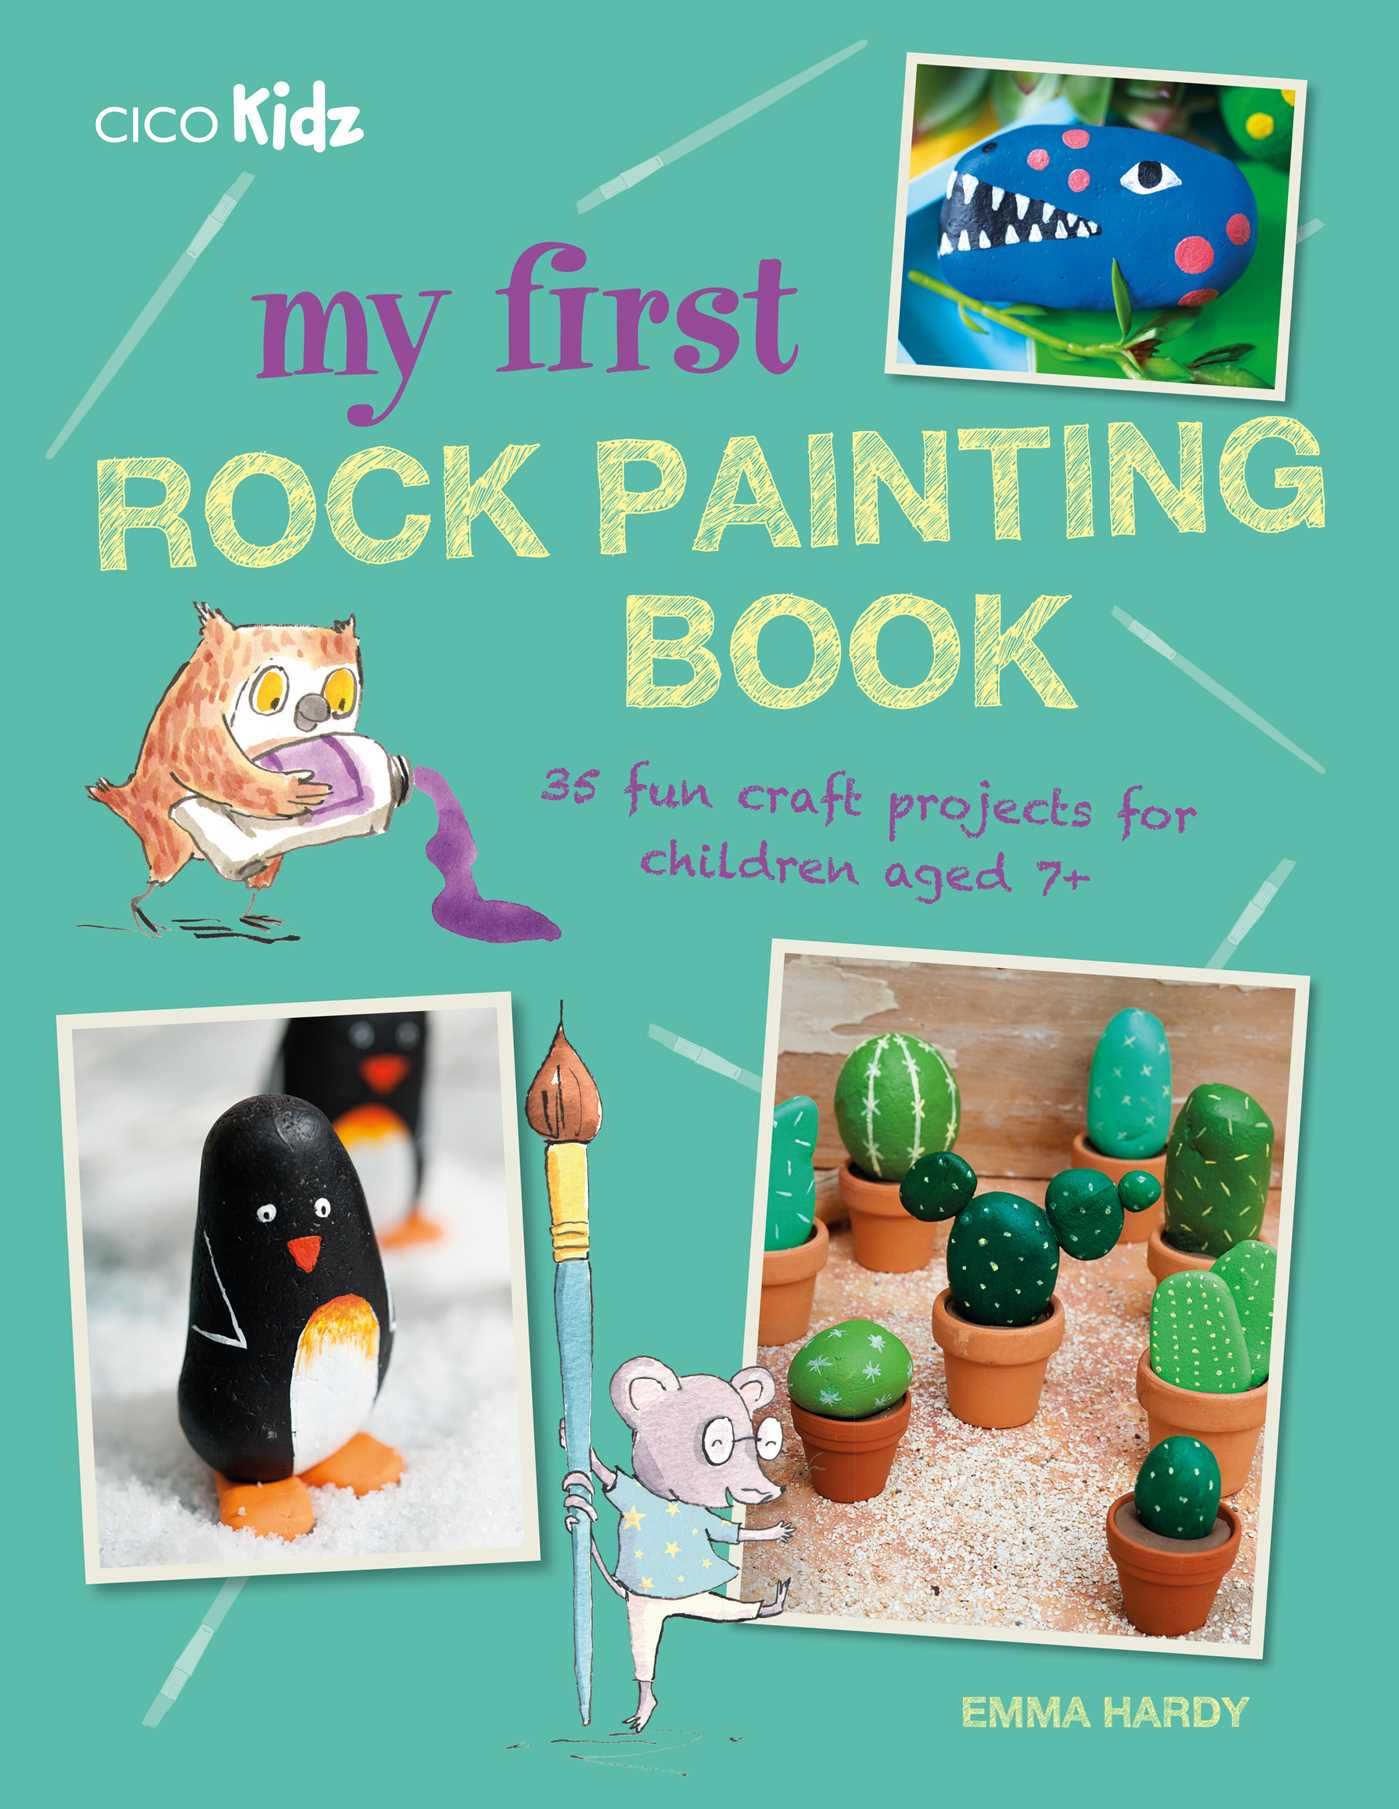 My first rock painting book 9781782496090 hr